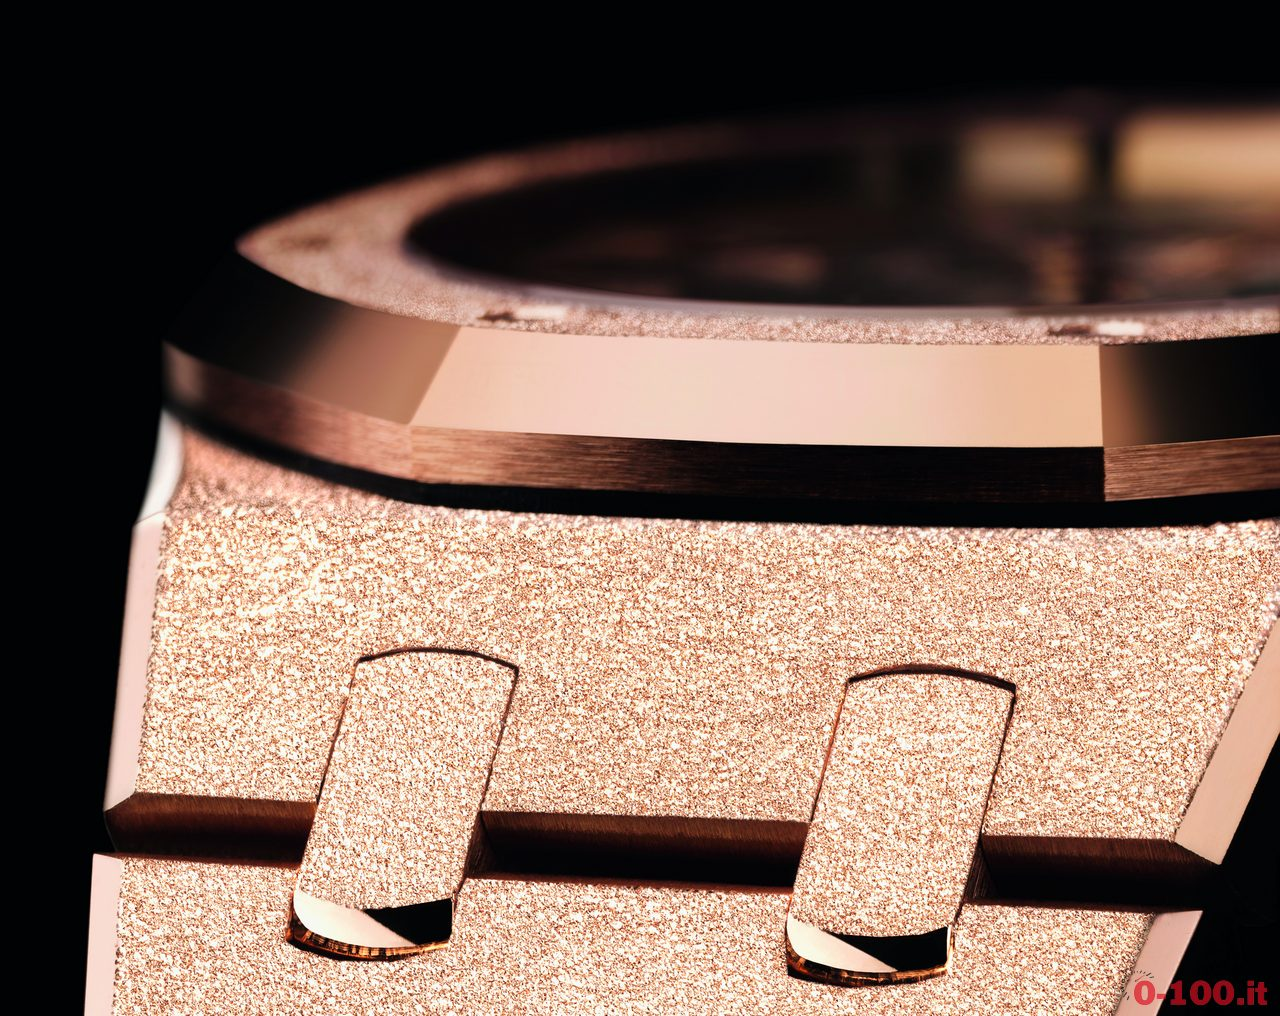 audemars-piguet-royal-oak-frosted-gold-ref-15454or-gg-1259or-01-prezzo-price-carolina-bucci_0-1007